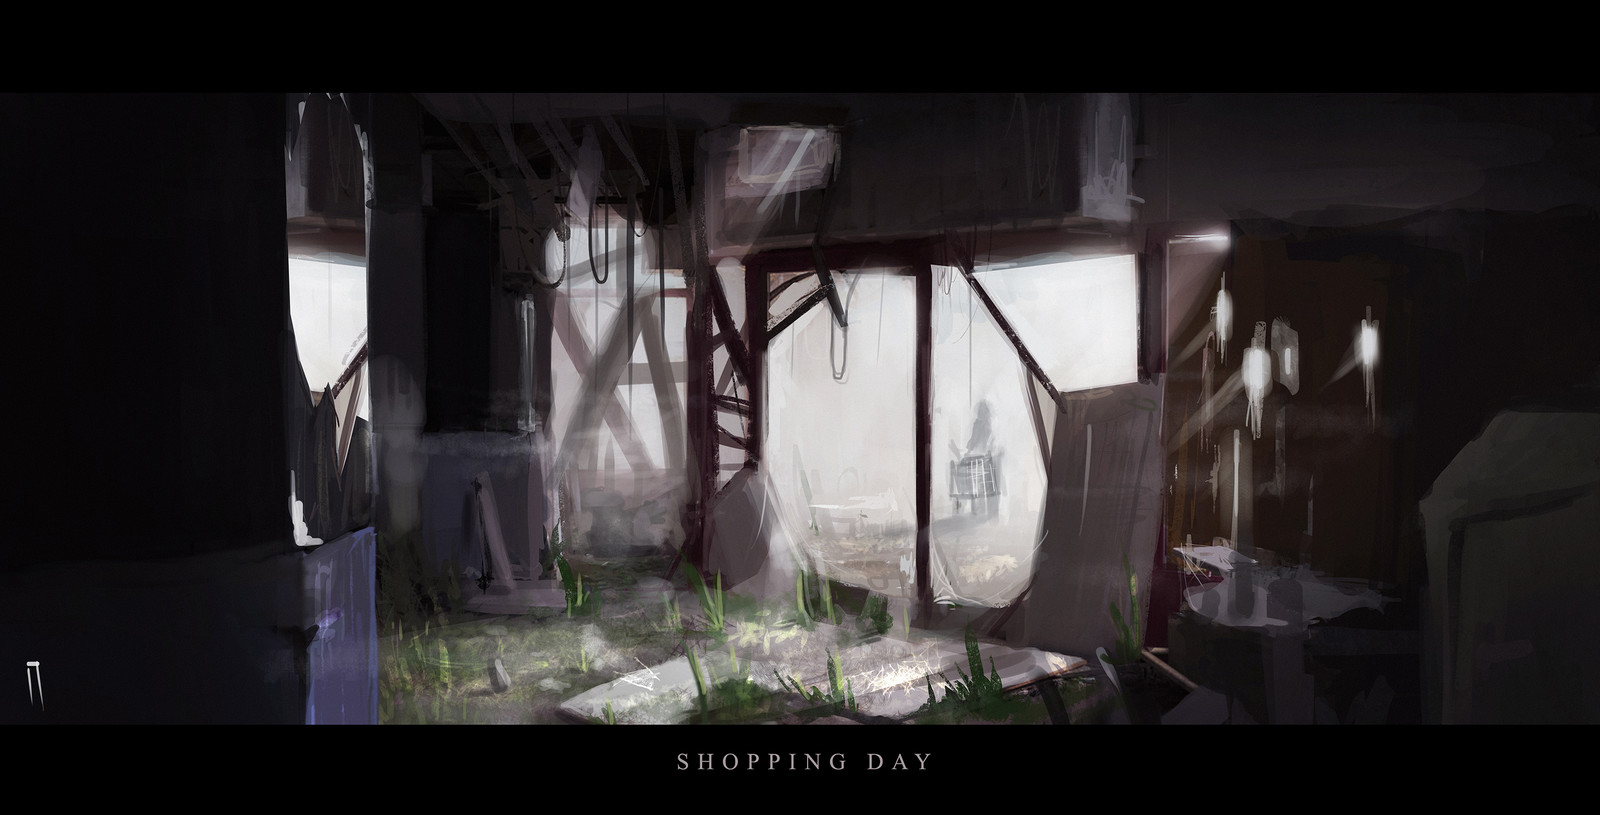 Two 30 min. Sketches - Shopping Day and Served Ice cold